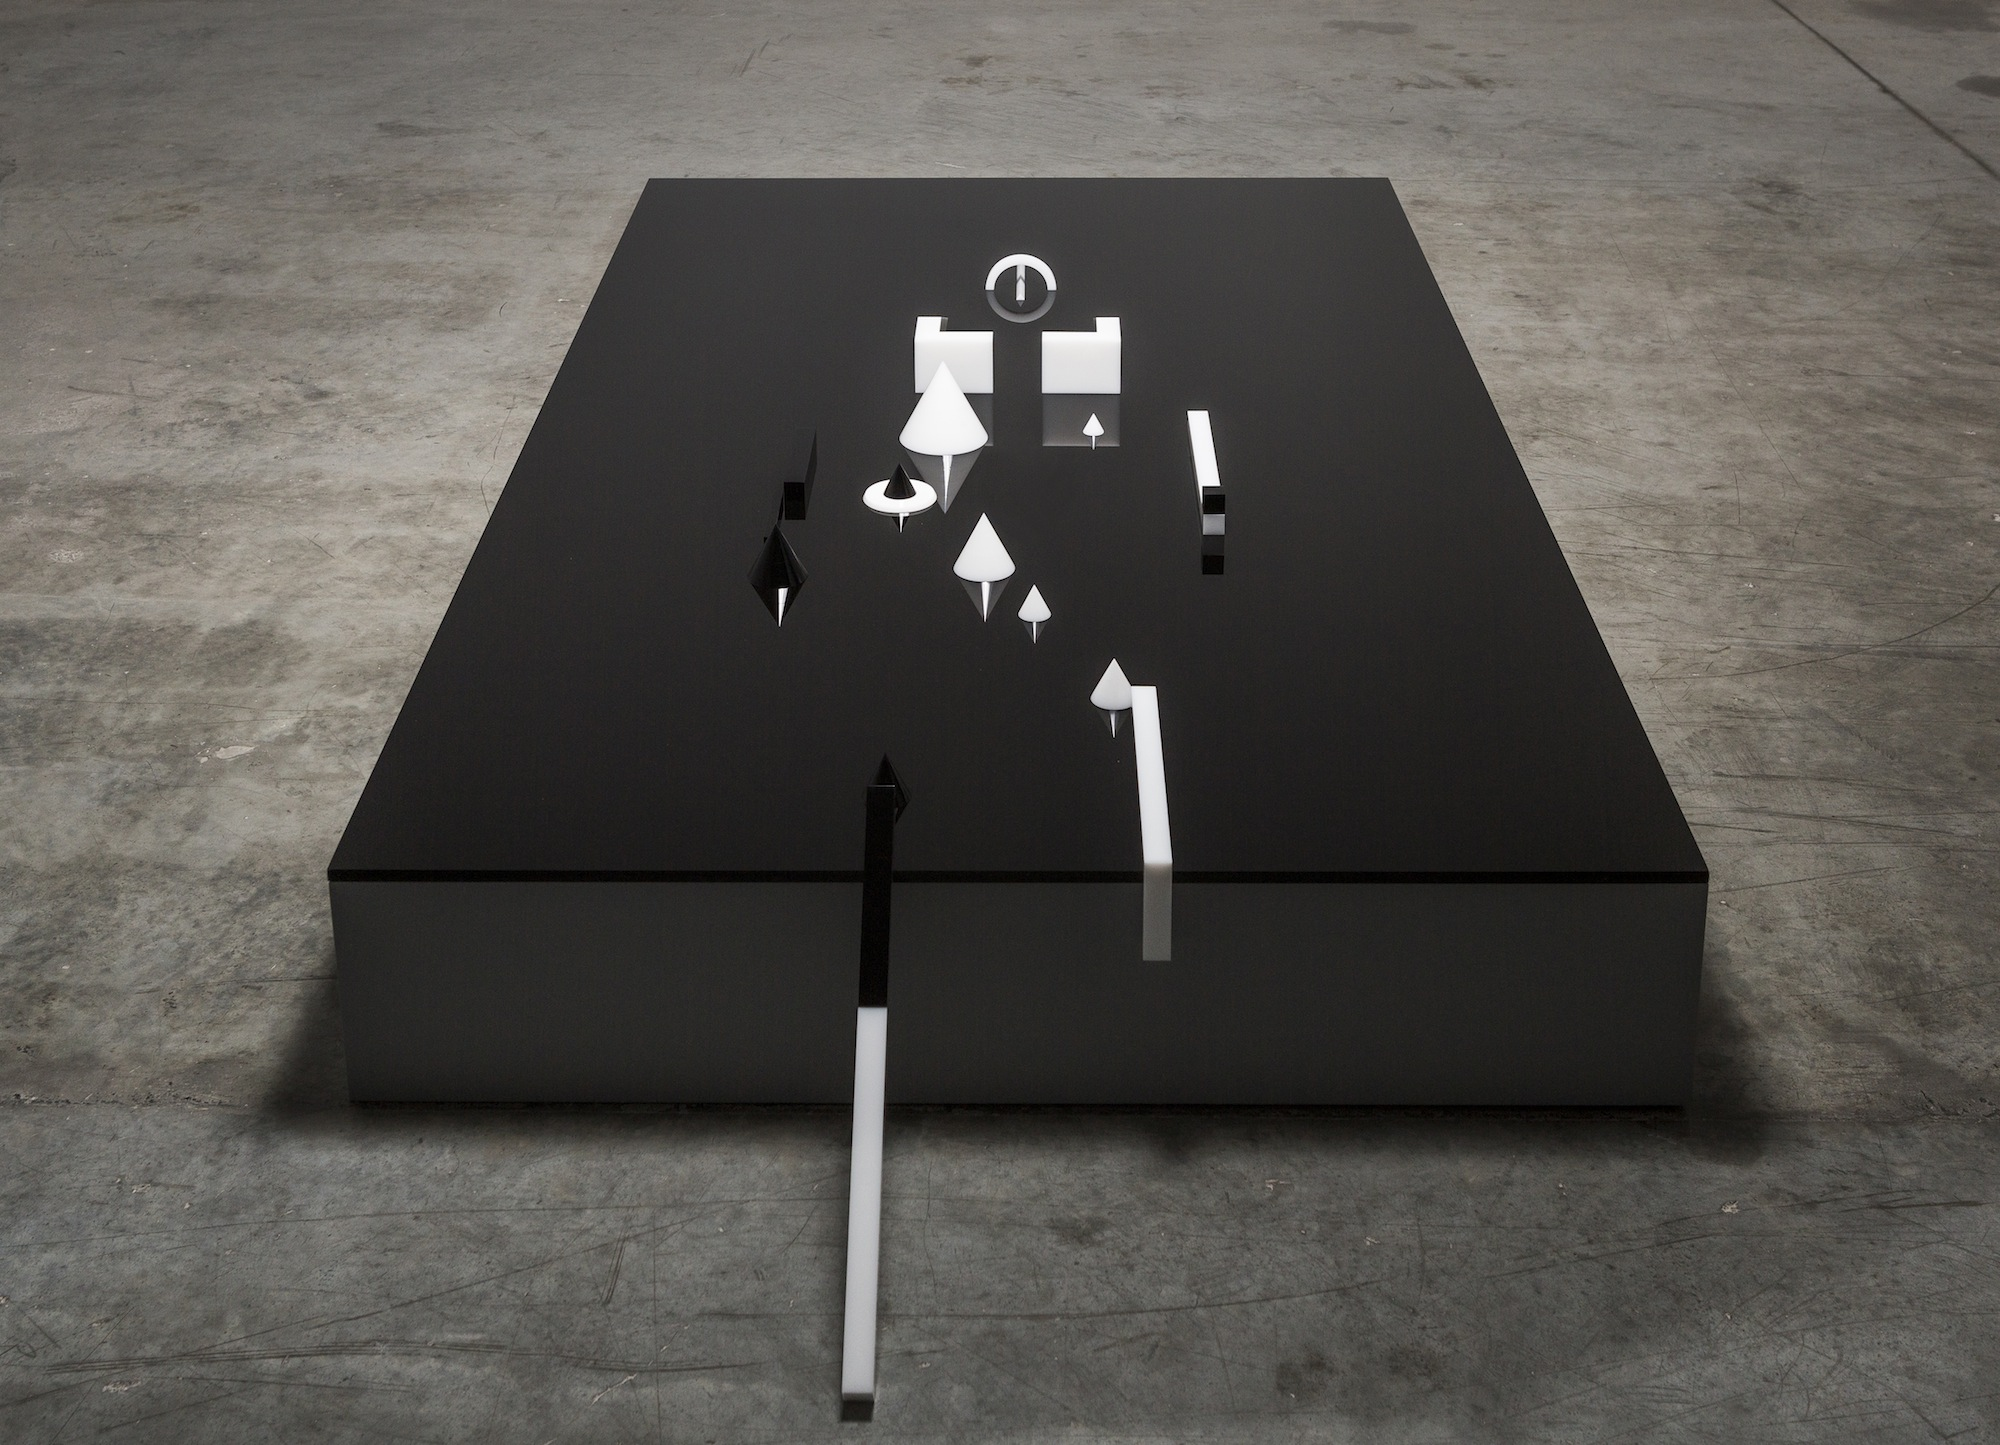 Residuum 2014 Perspex and MDF 213.36 x 121.92 (perspex) Variable dimensions (19 parts)